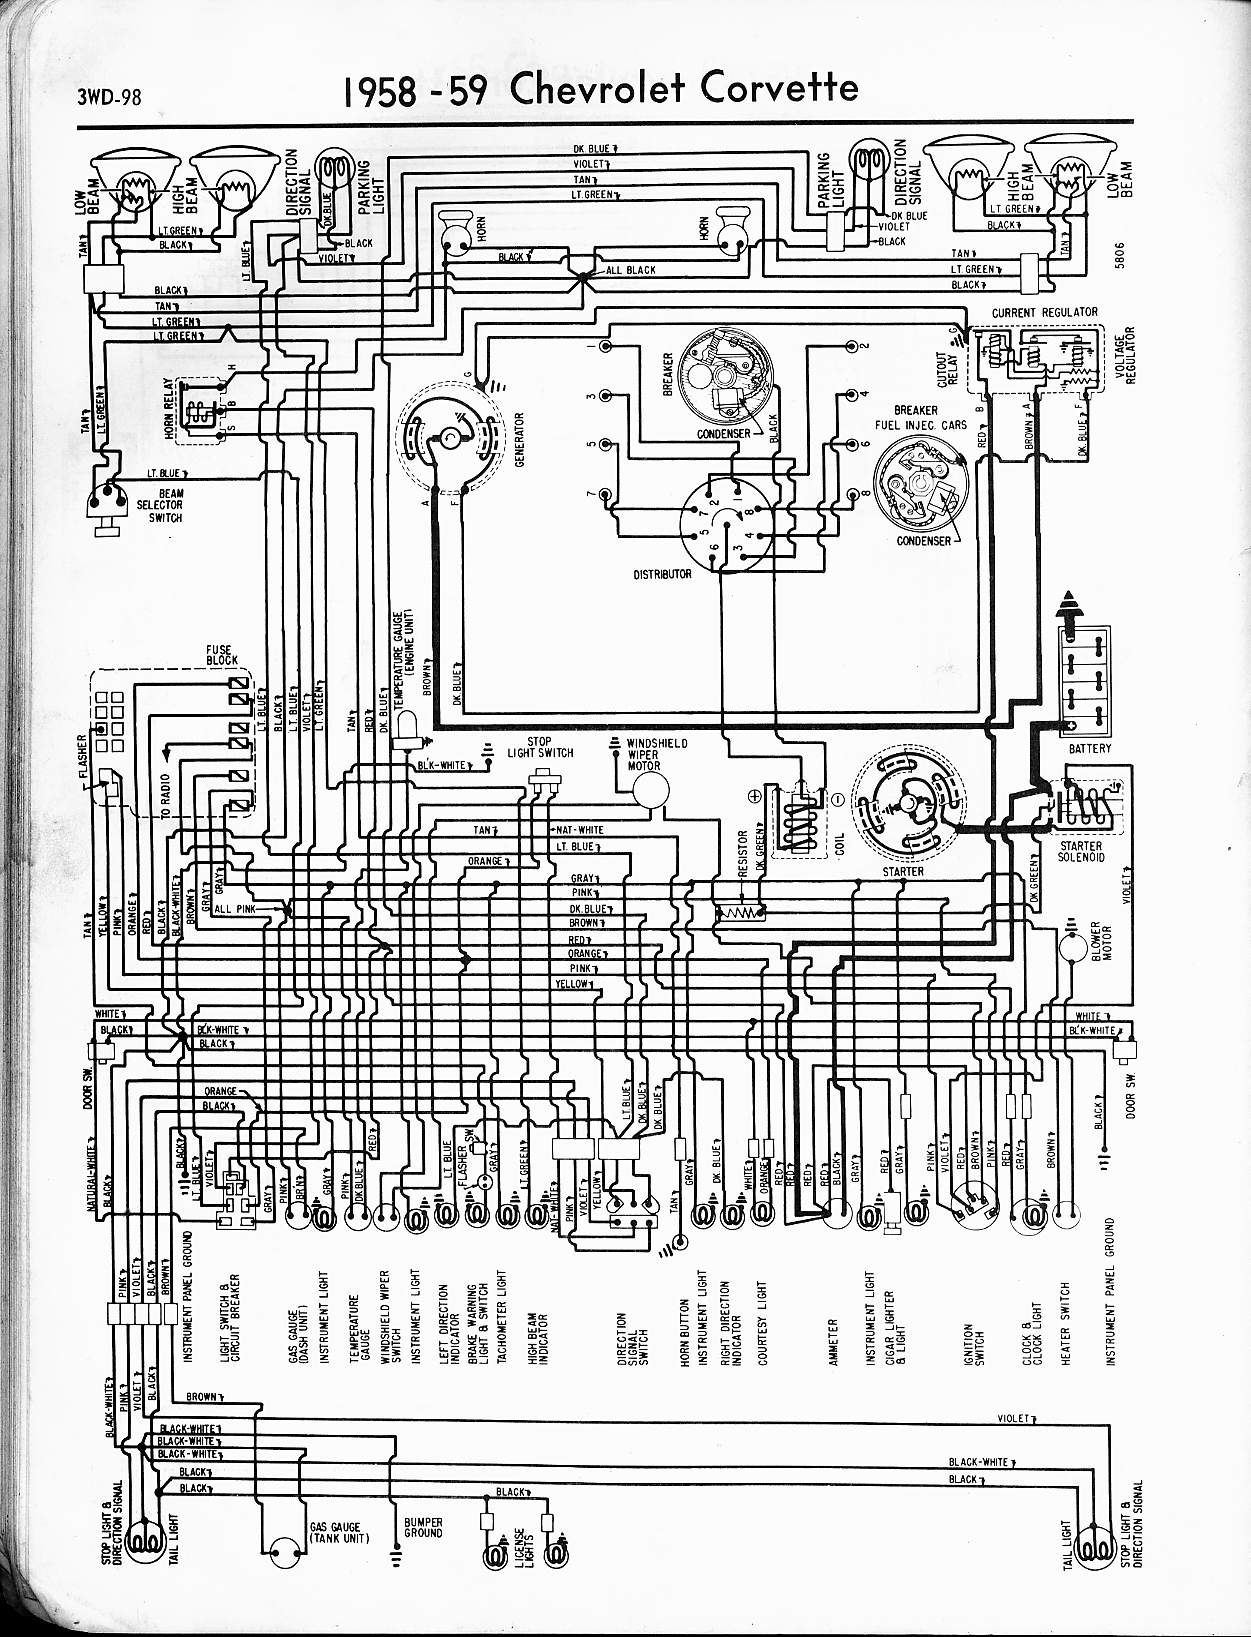 1960 Corvette Wiring Diagram Reinvent Your 79 Chevy Starter Get Free Image About 57 65 Diagrams Rh Oldcarmanualproject Com 1959